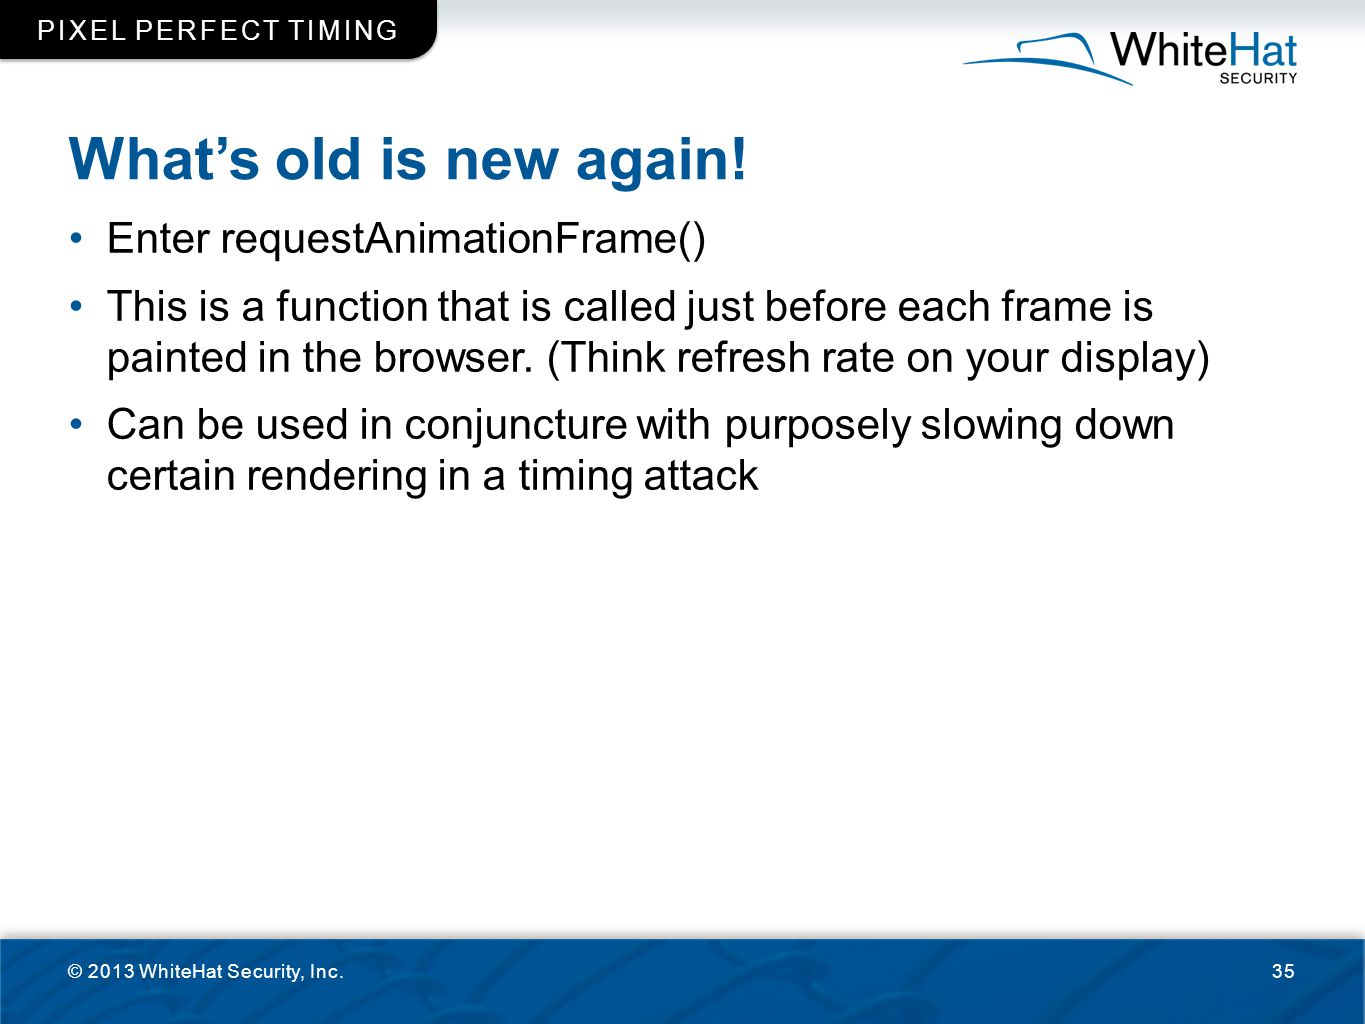 What's old is new again! Enter requestAnimationFrame()